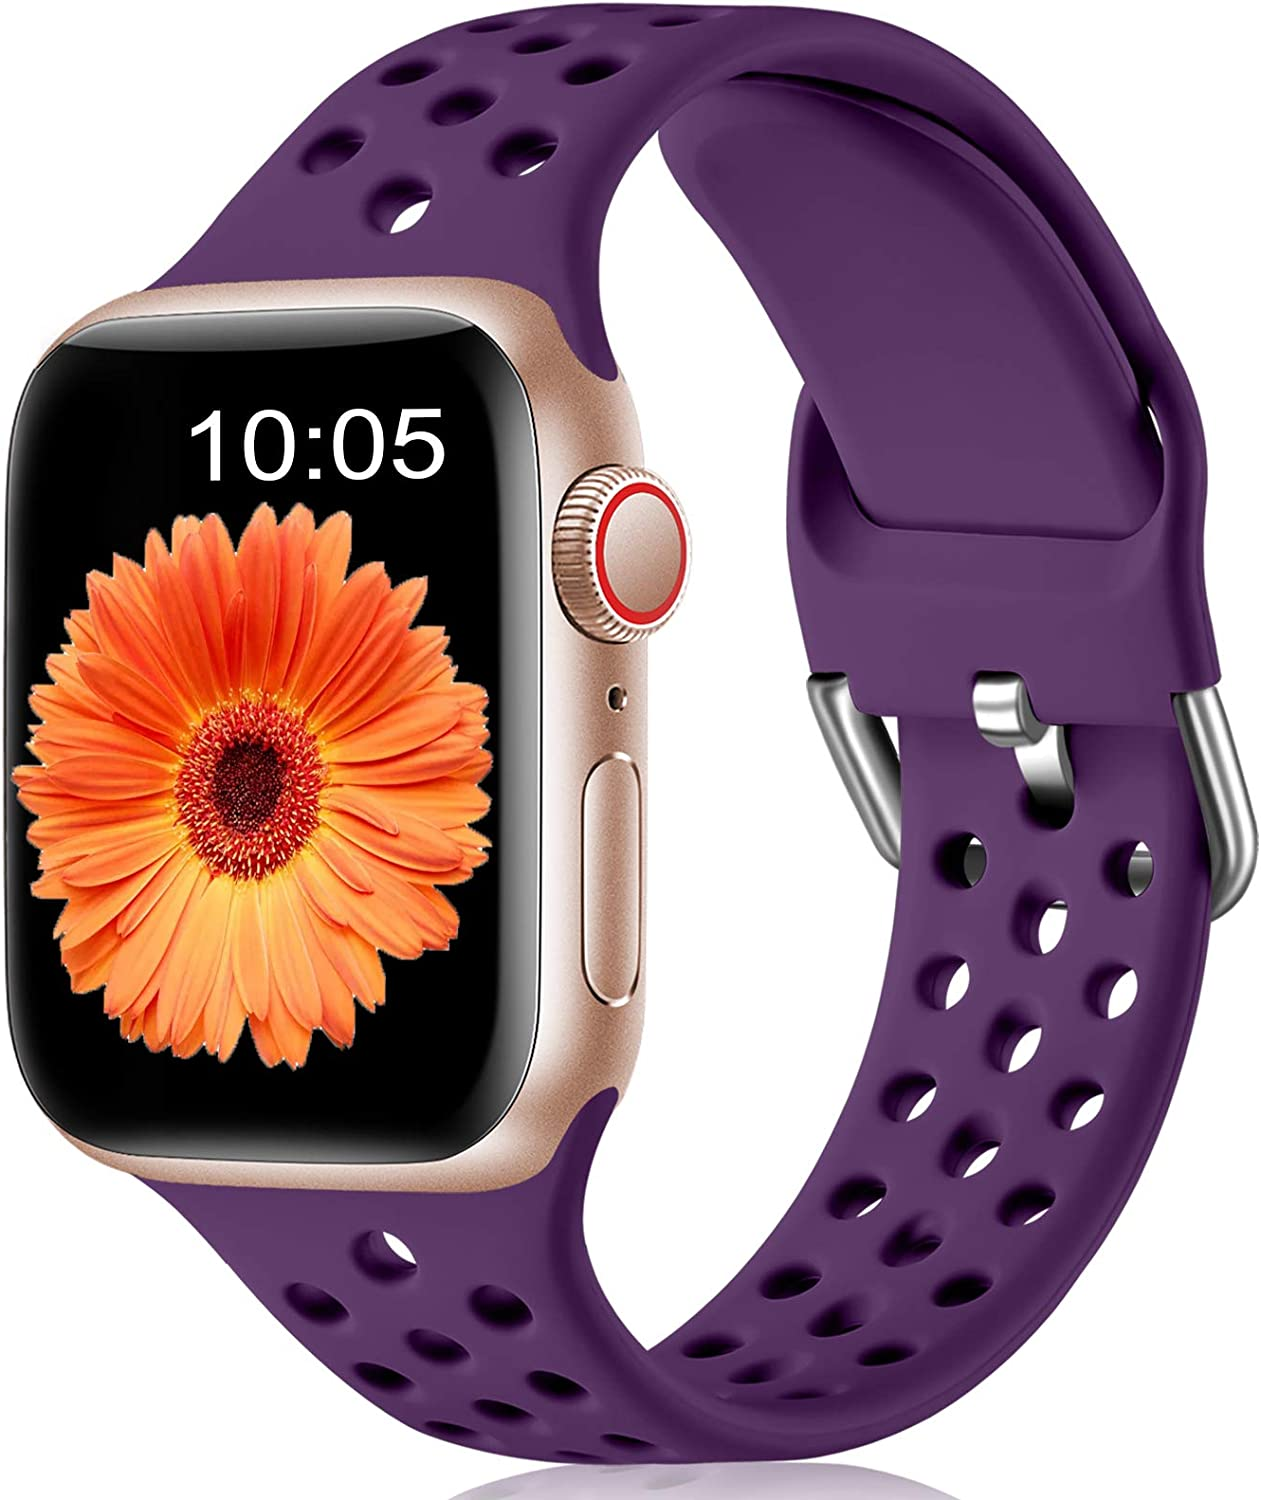 LEOMARON Compatible with Apple Watch Band 40mm 44mm 38mm 42mm, Breathable Sport Soft Silicone Replacement Wrist Band Compatible for iWatch Series 6/SE 5 4 3 2 1